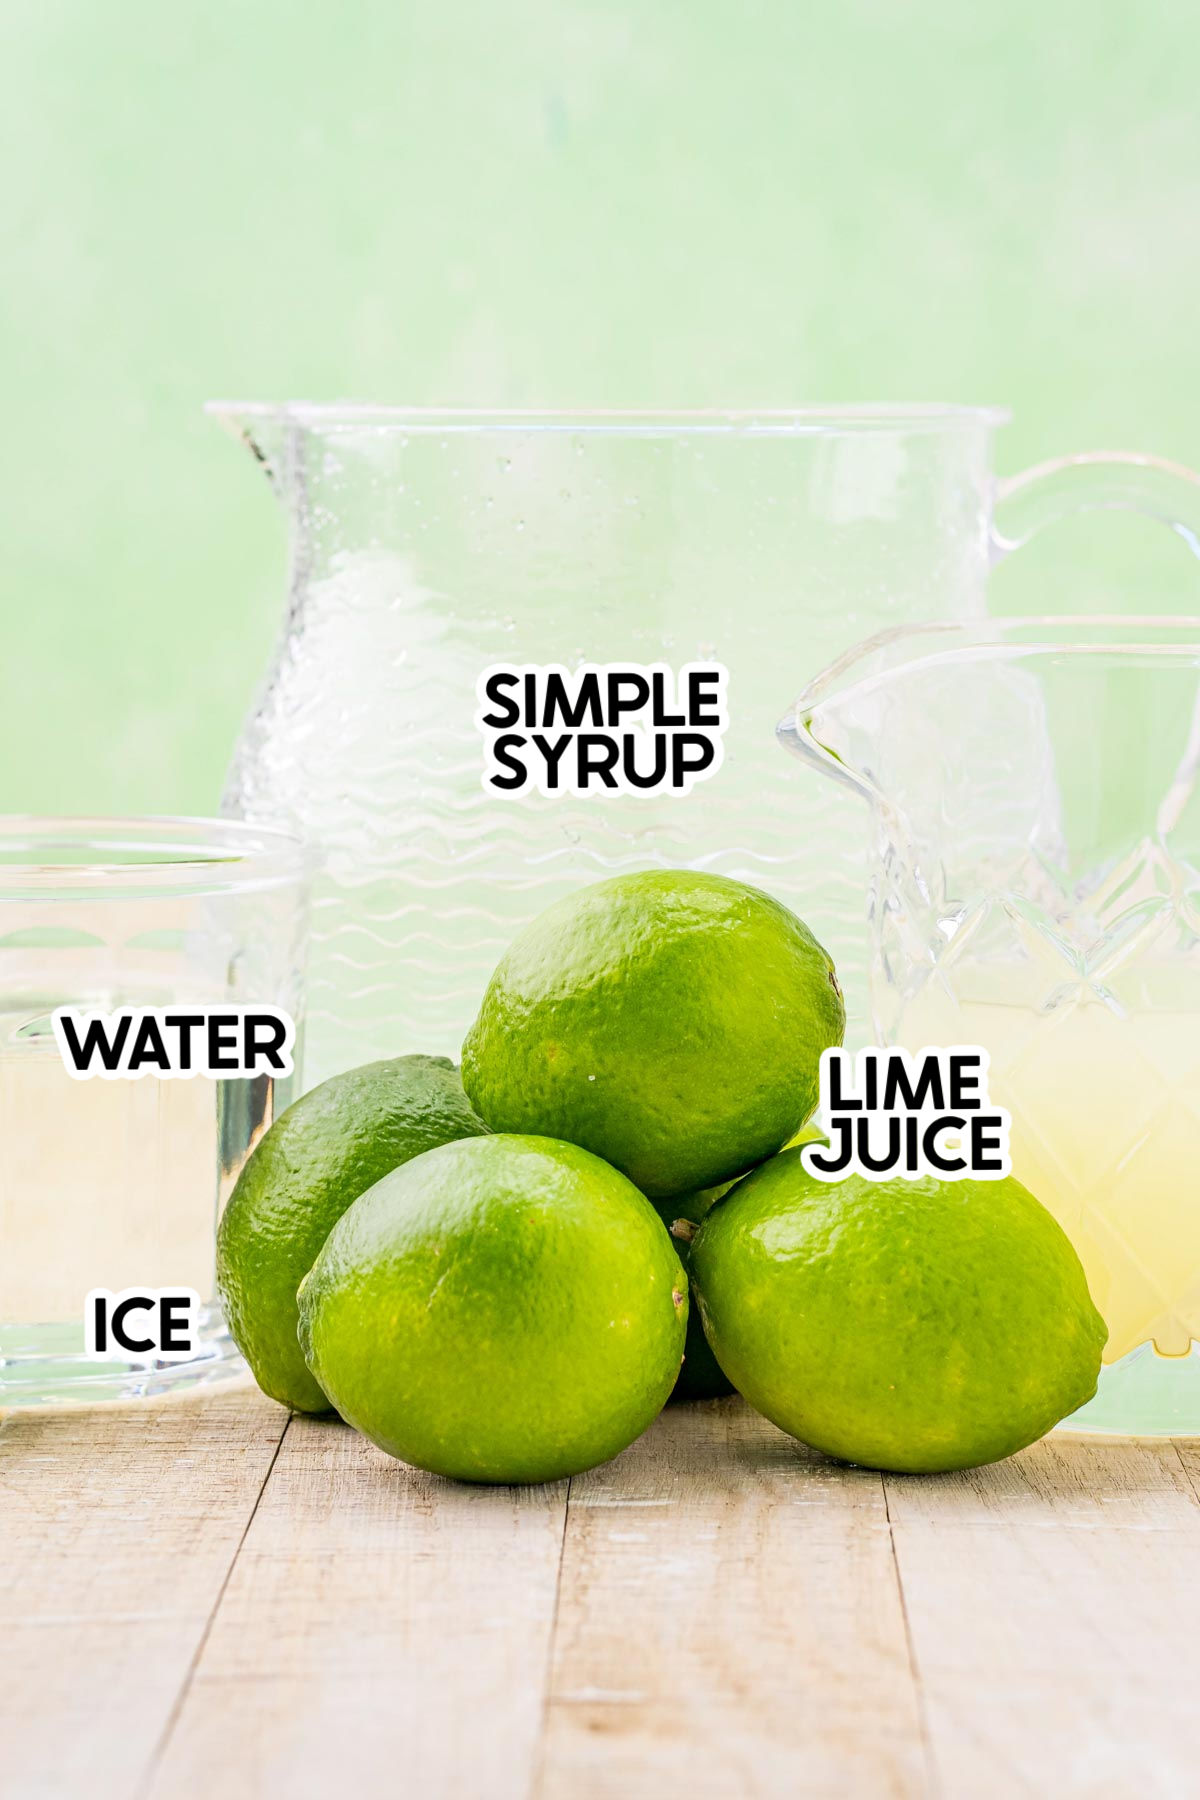 ingredients for homemade limeade with labels